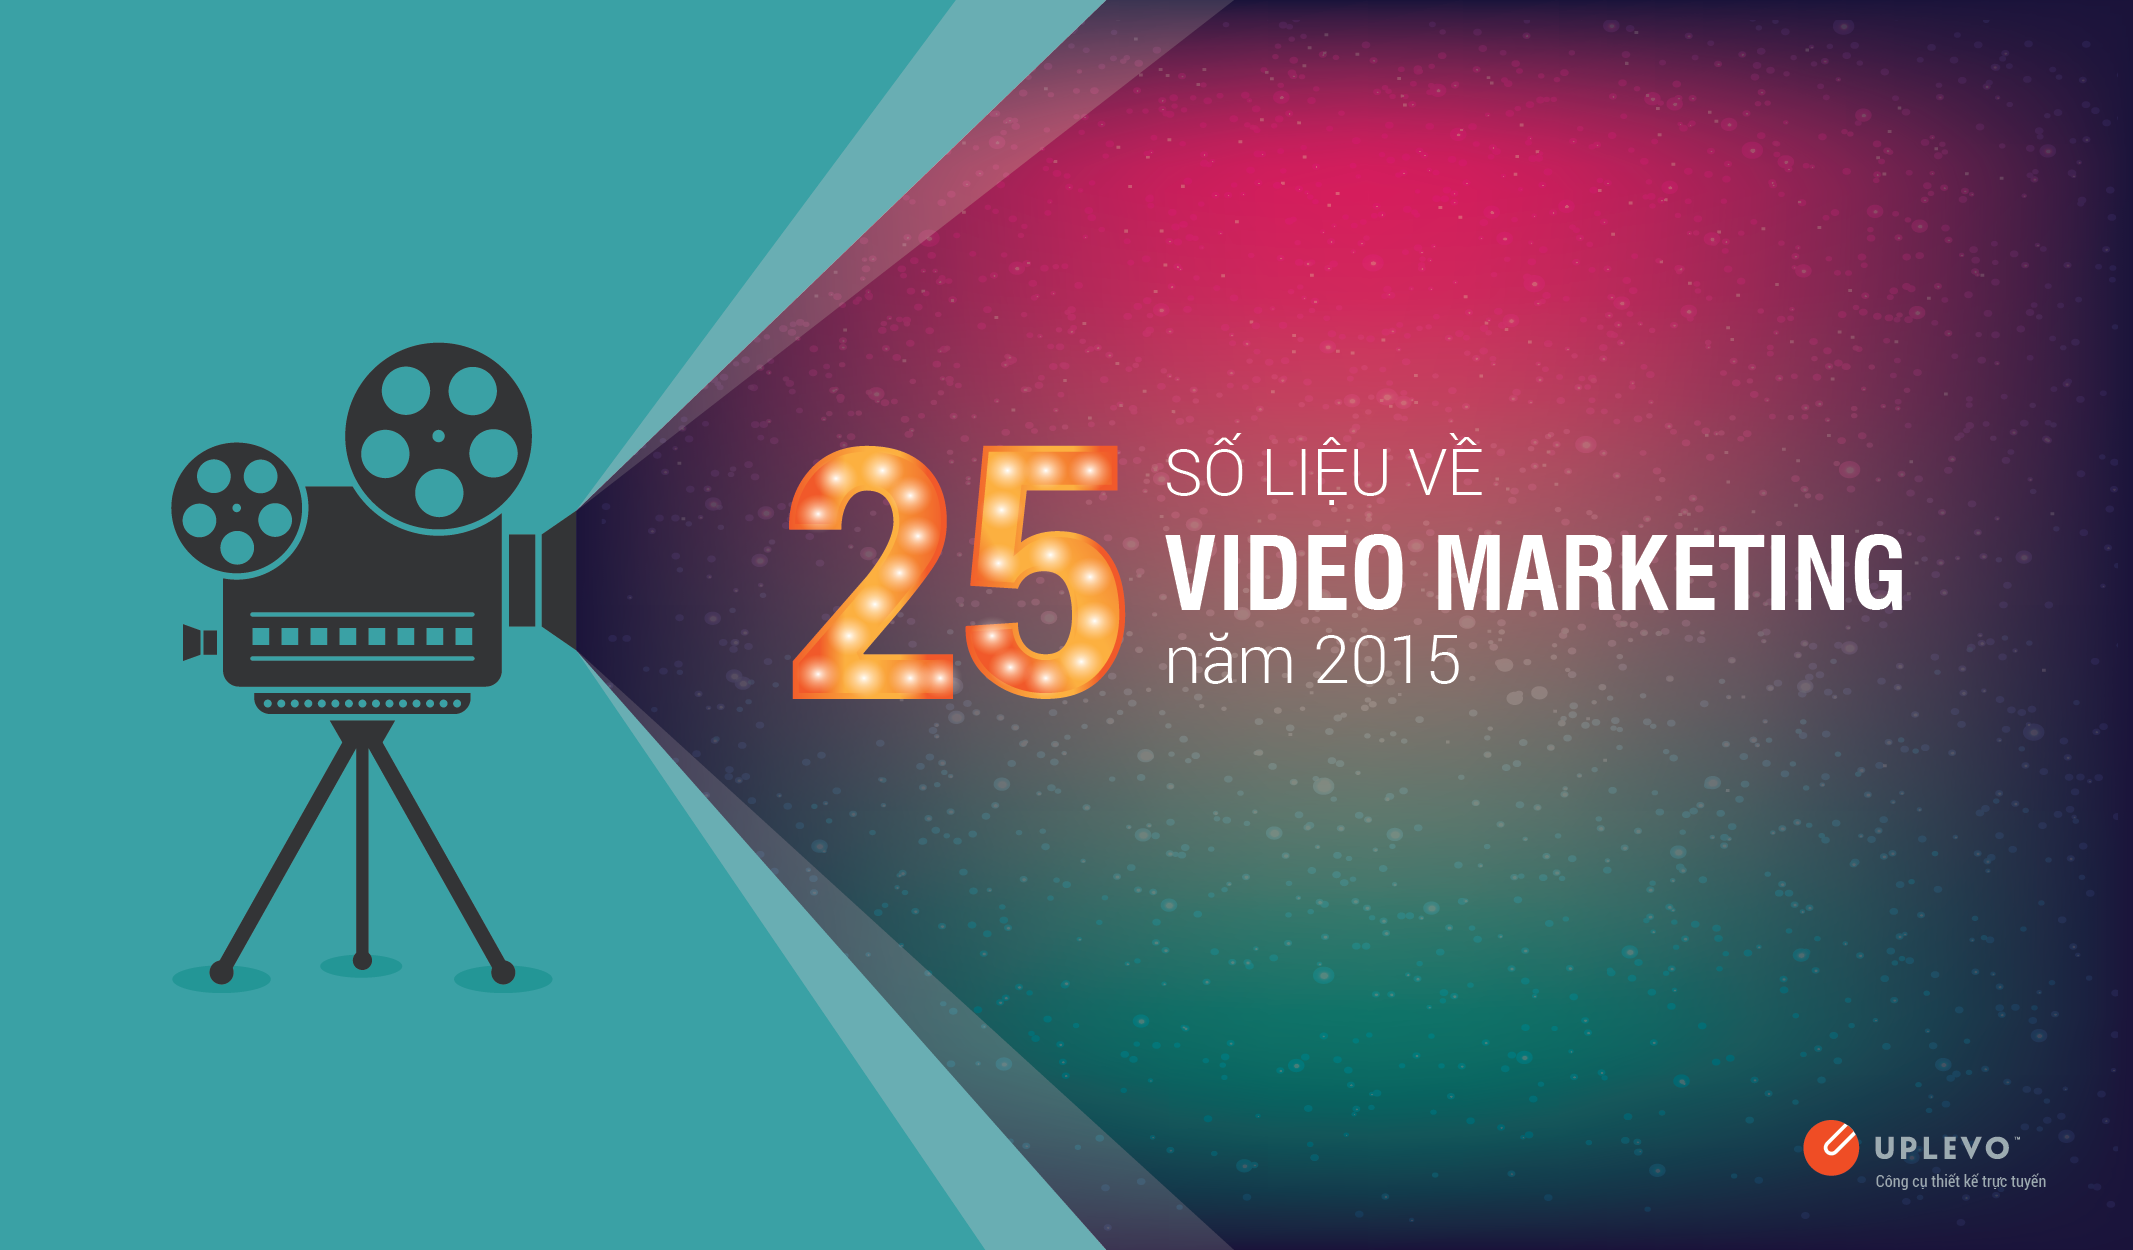 25 số liệu về video marketing 2015